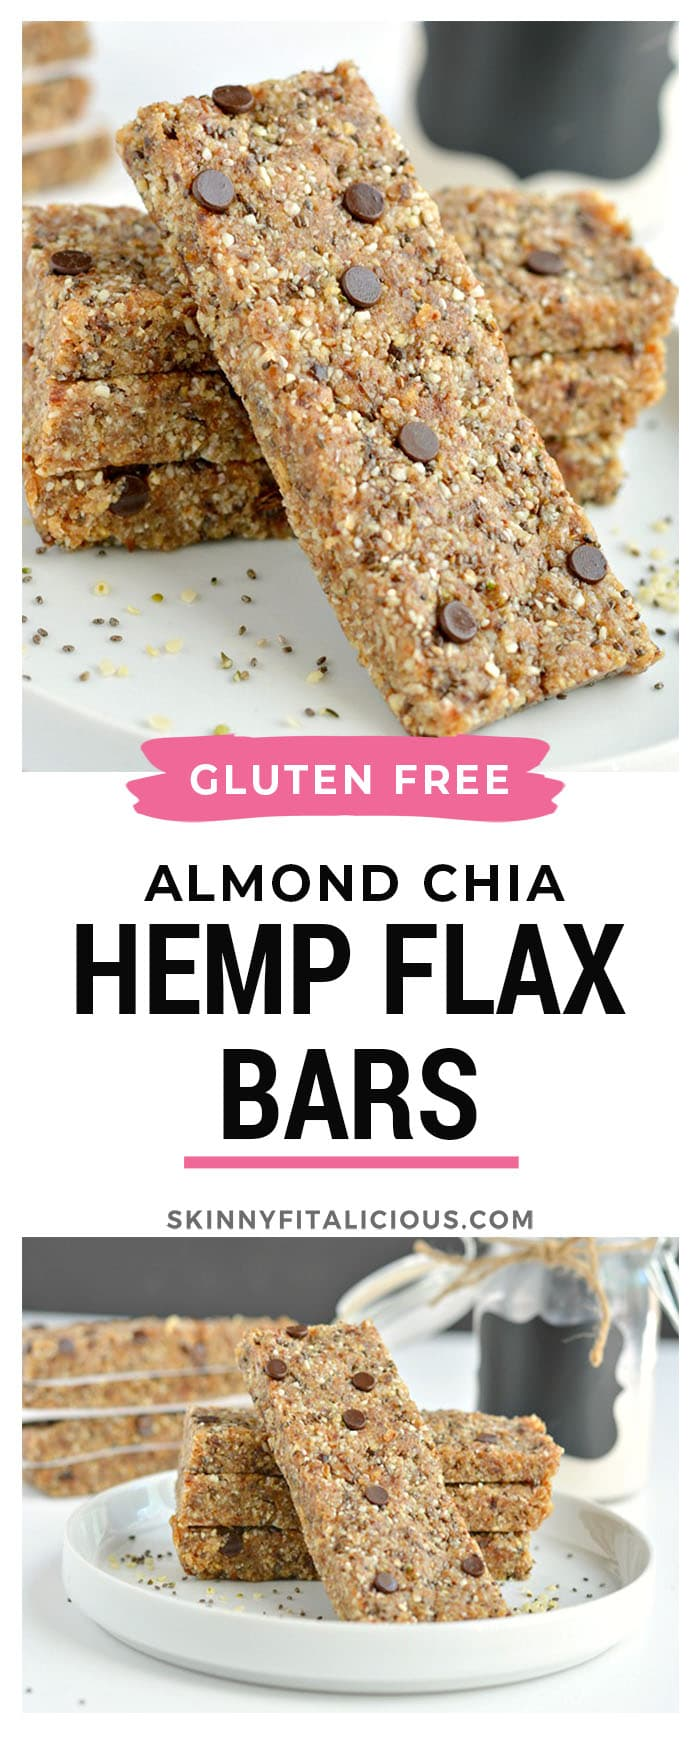 Almond Chia Hemp Flax Bars are no bake superfood granola bars made with oats, dates, almonds, chia, hemp, flax, a touch of chocolate and no added sugar. A naturally sweet and salty snackbar no one canresist! Gluten Free + Low Calorie + Vegan